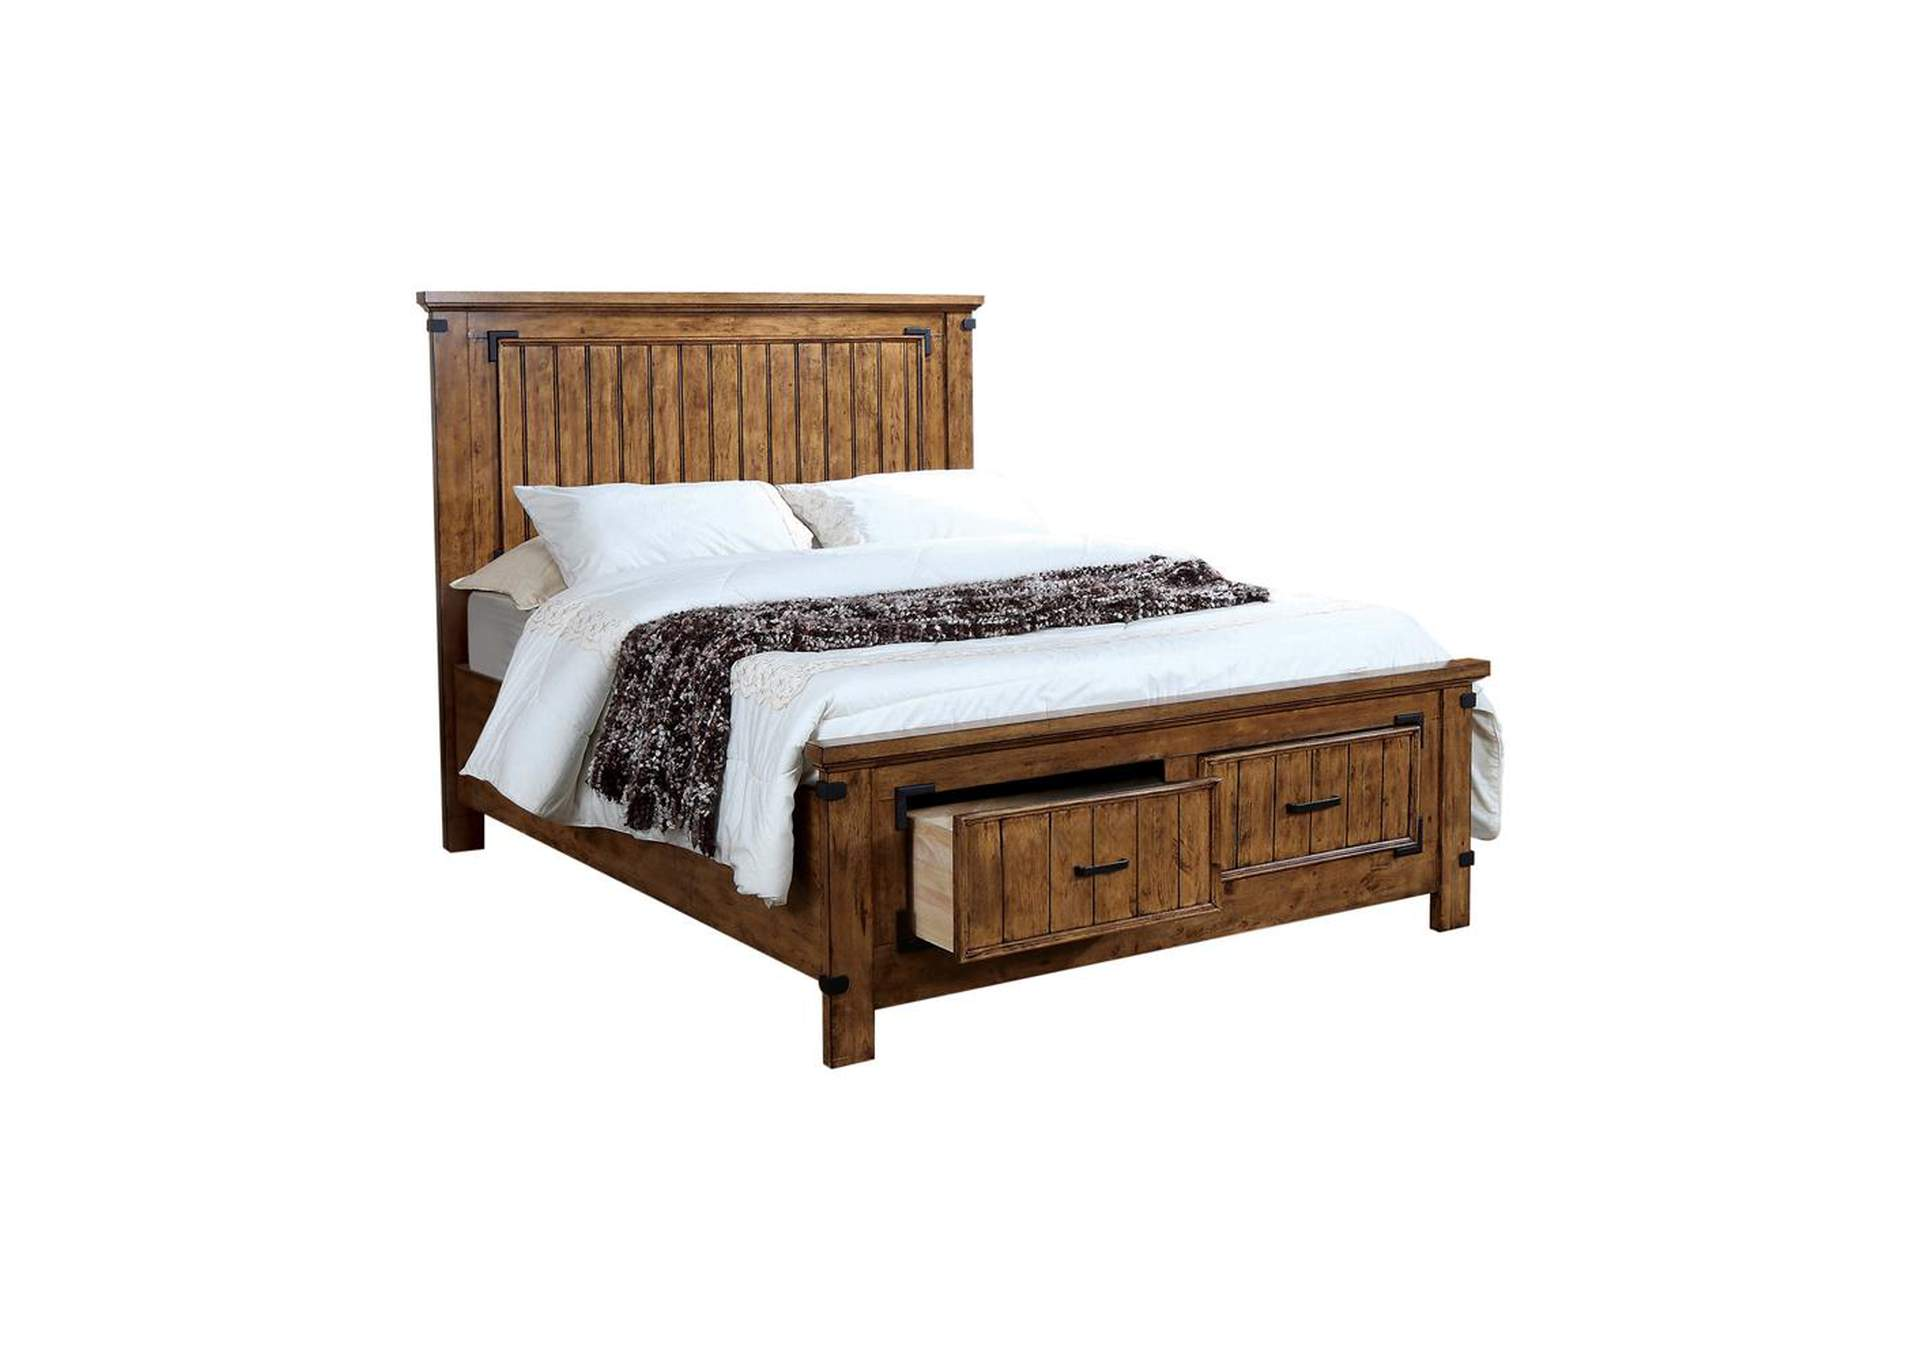 Rustic Honey Brenner Rustic Honey Queen Bed,Coaster Furniture